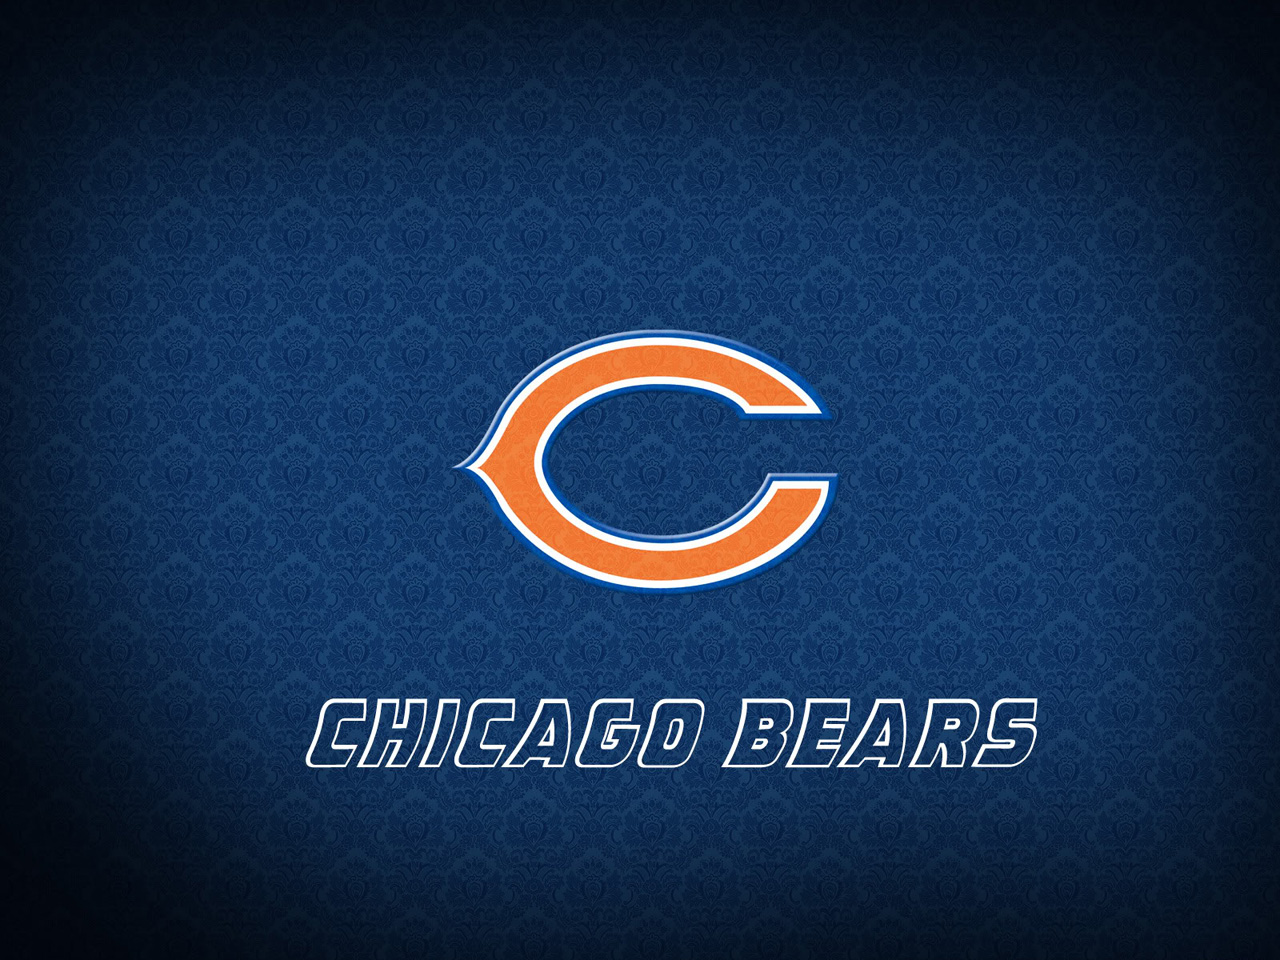 And here even more information about Chicago Bears 1280x960